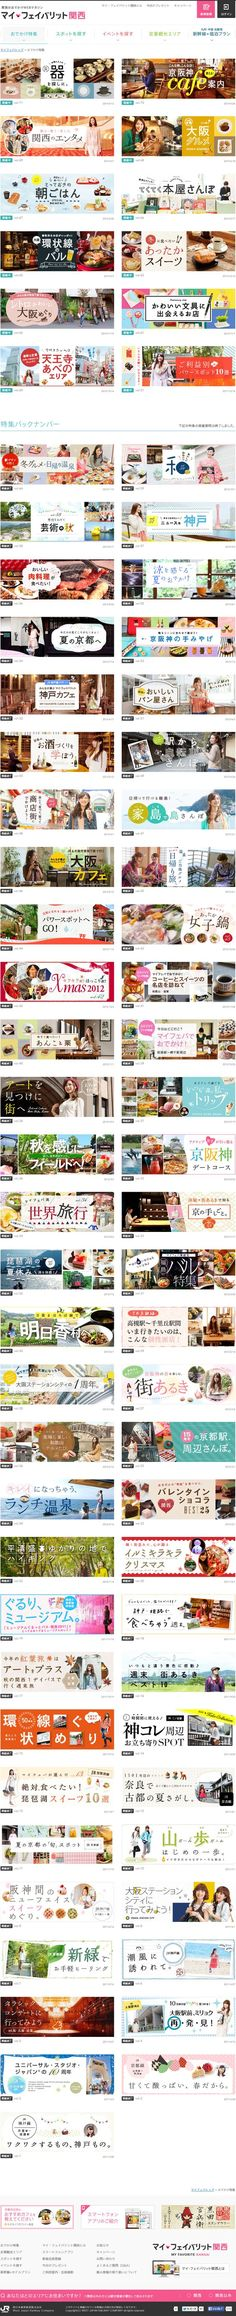 Search the most significant collection of HD Web banner background photos on Pngtree, consisting of sale banner, flag banner, ribbon banner background. Japan Design, Ad Design, Layout Design, Leaflet Design, Media Design, Dm Poster, Web Banner Design, Web Banners, Promotional Design